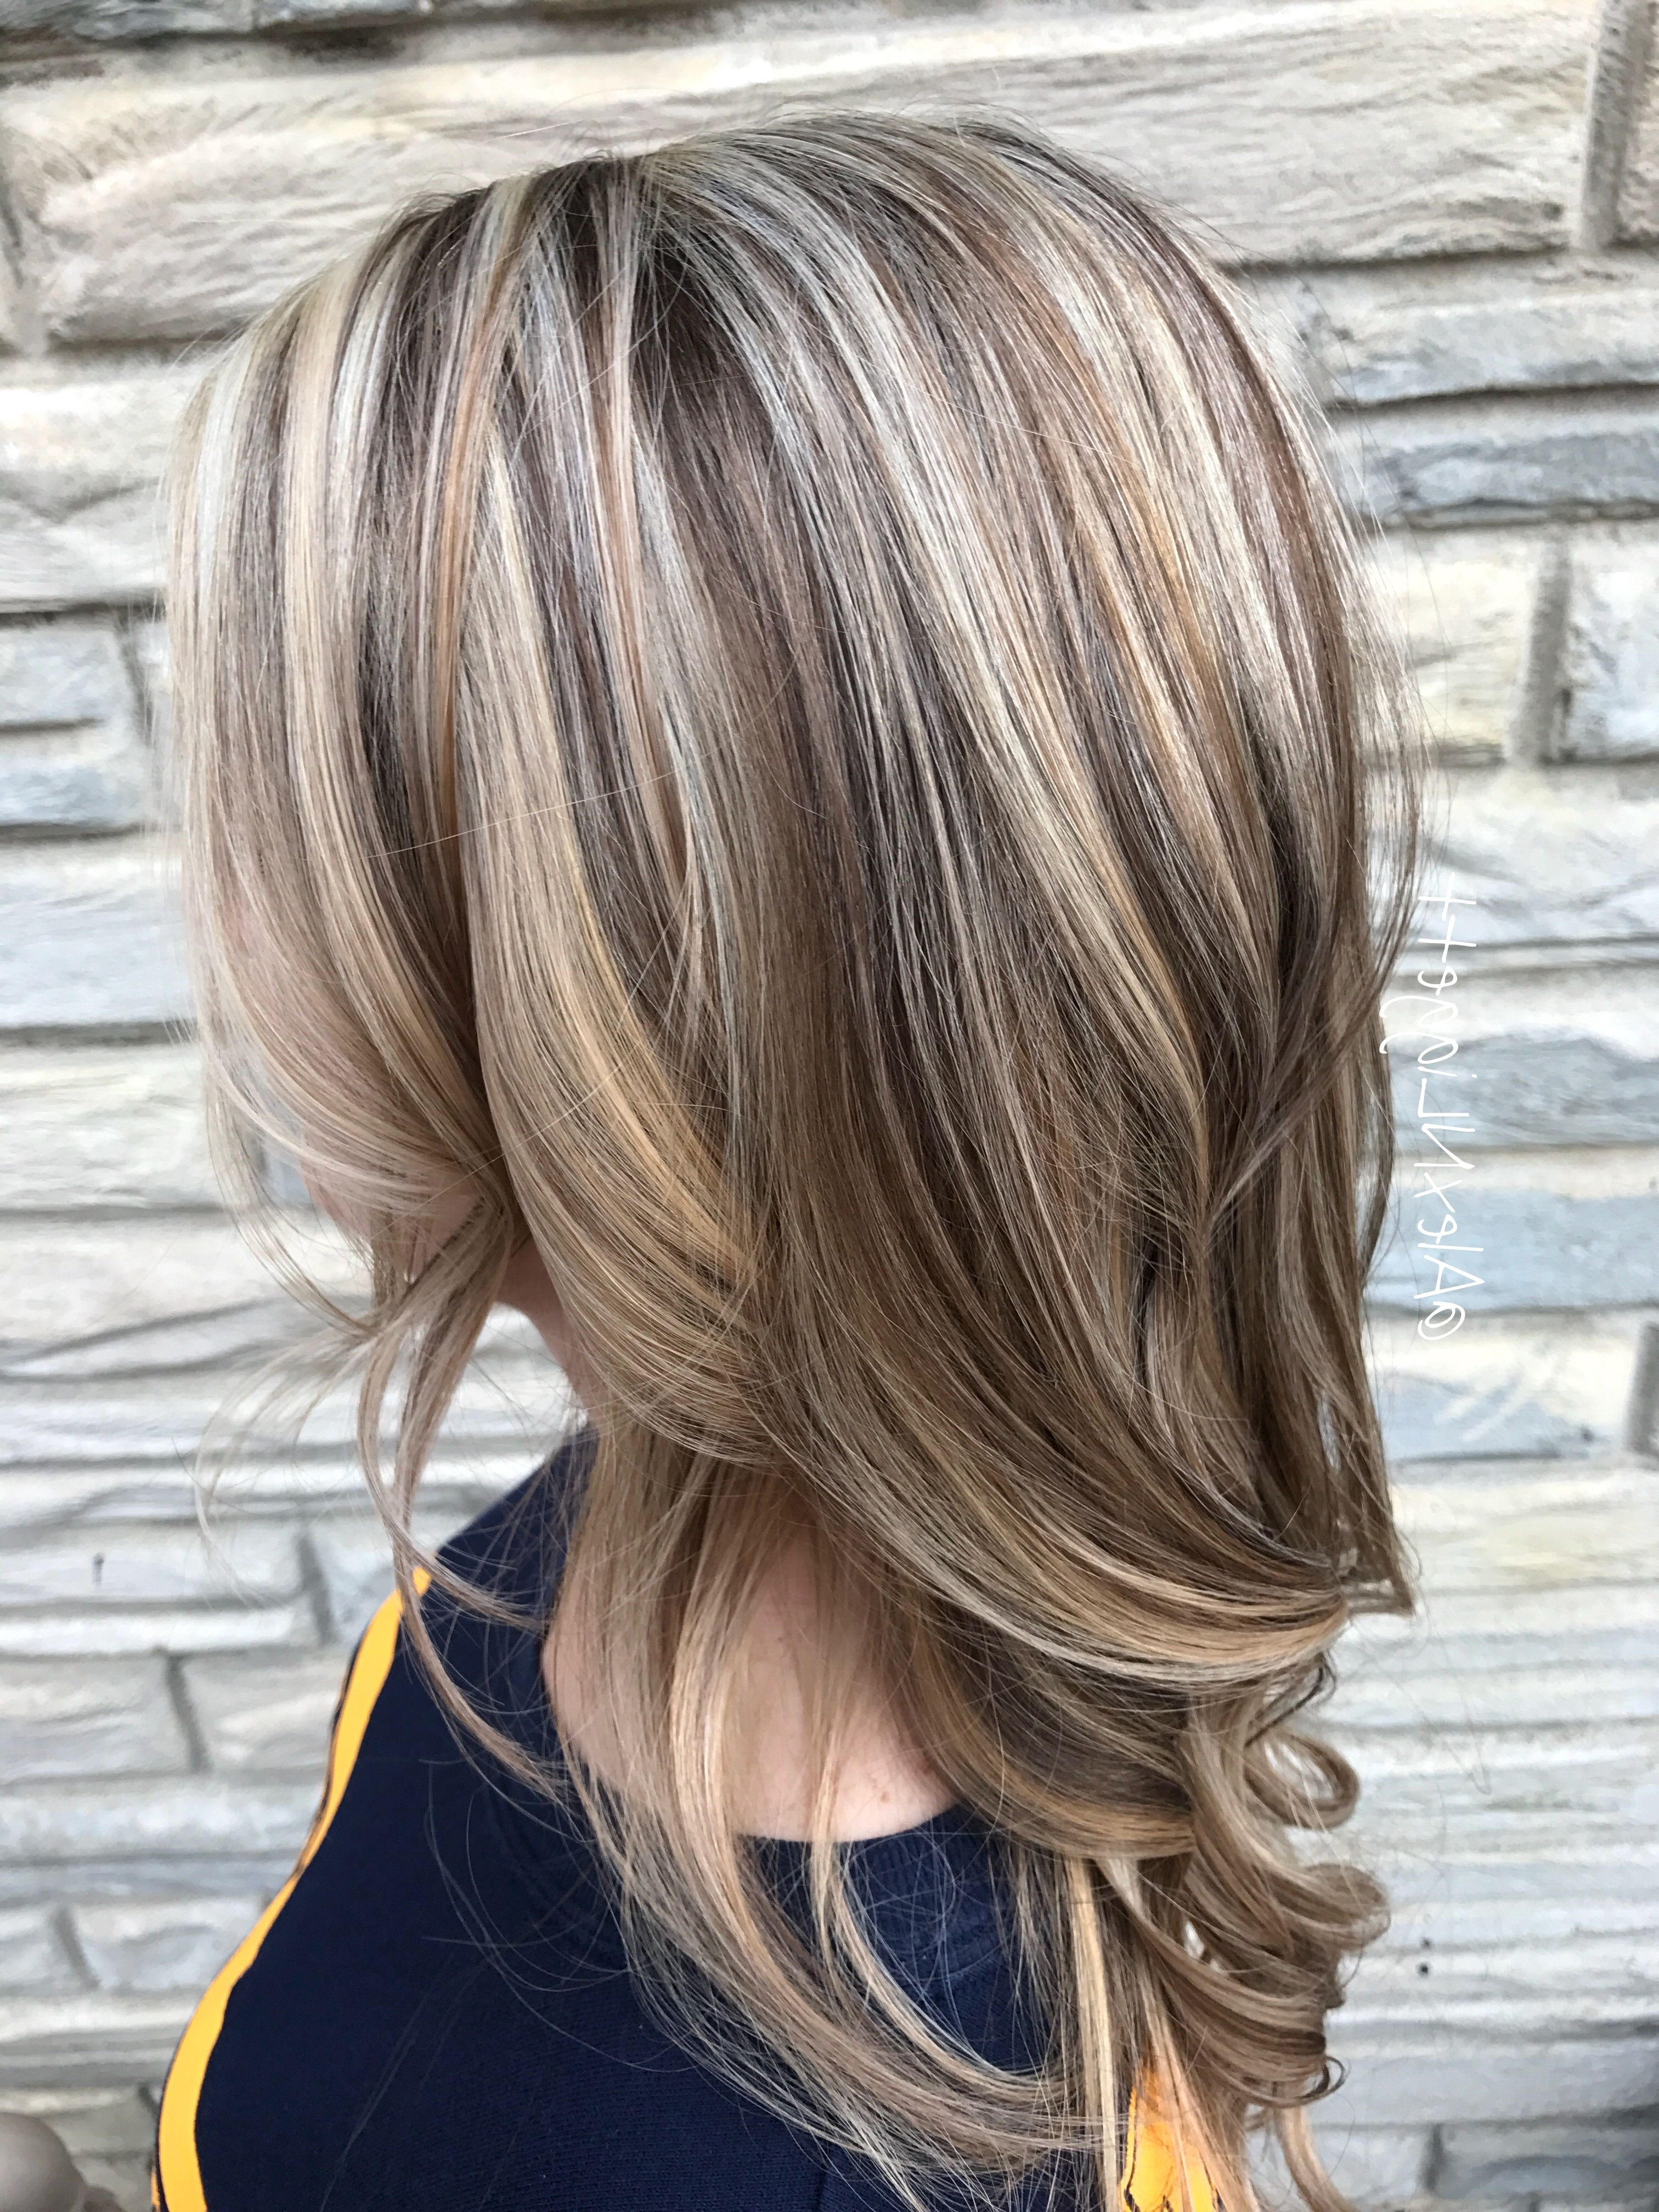 Hairstyles : Dark Brown Hair Hairstyles With Silver Blonde Intended For Most Recent Loose Layers Hairstyles With Silver Highlights (View 10 of 20)